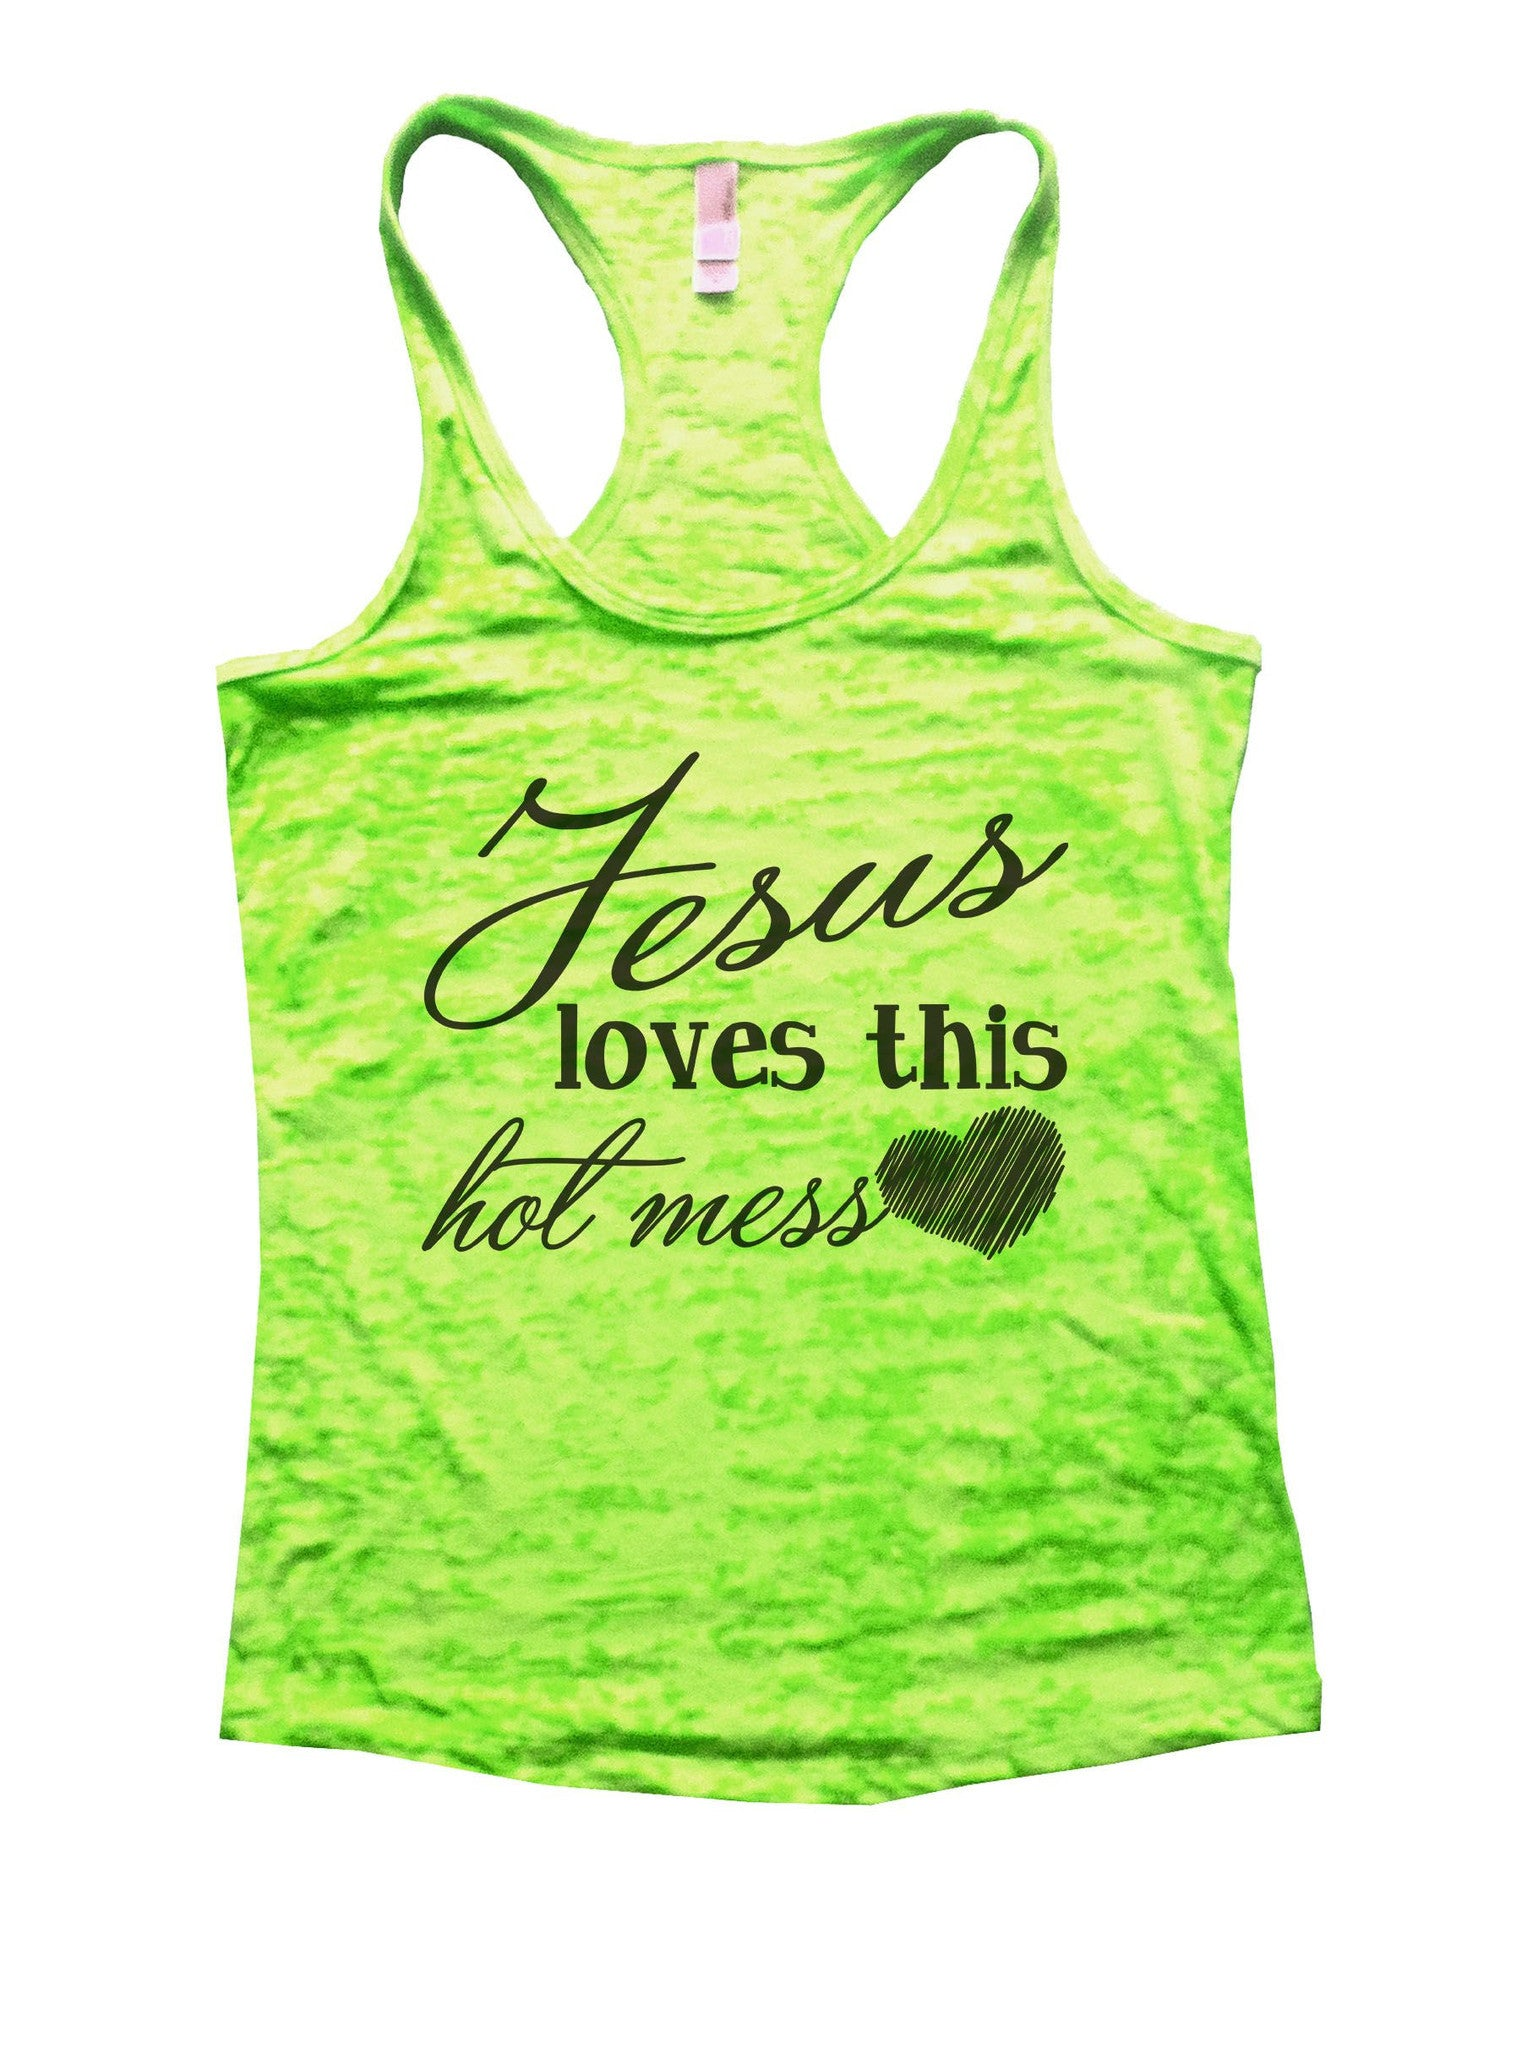 Jesus Loves This Hot Mess Burnout Tank Top By BurnoutTankTops.com - 891 - Funny Shirts Tank Tops Burnouts and Triblends  - 2